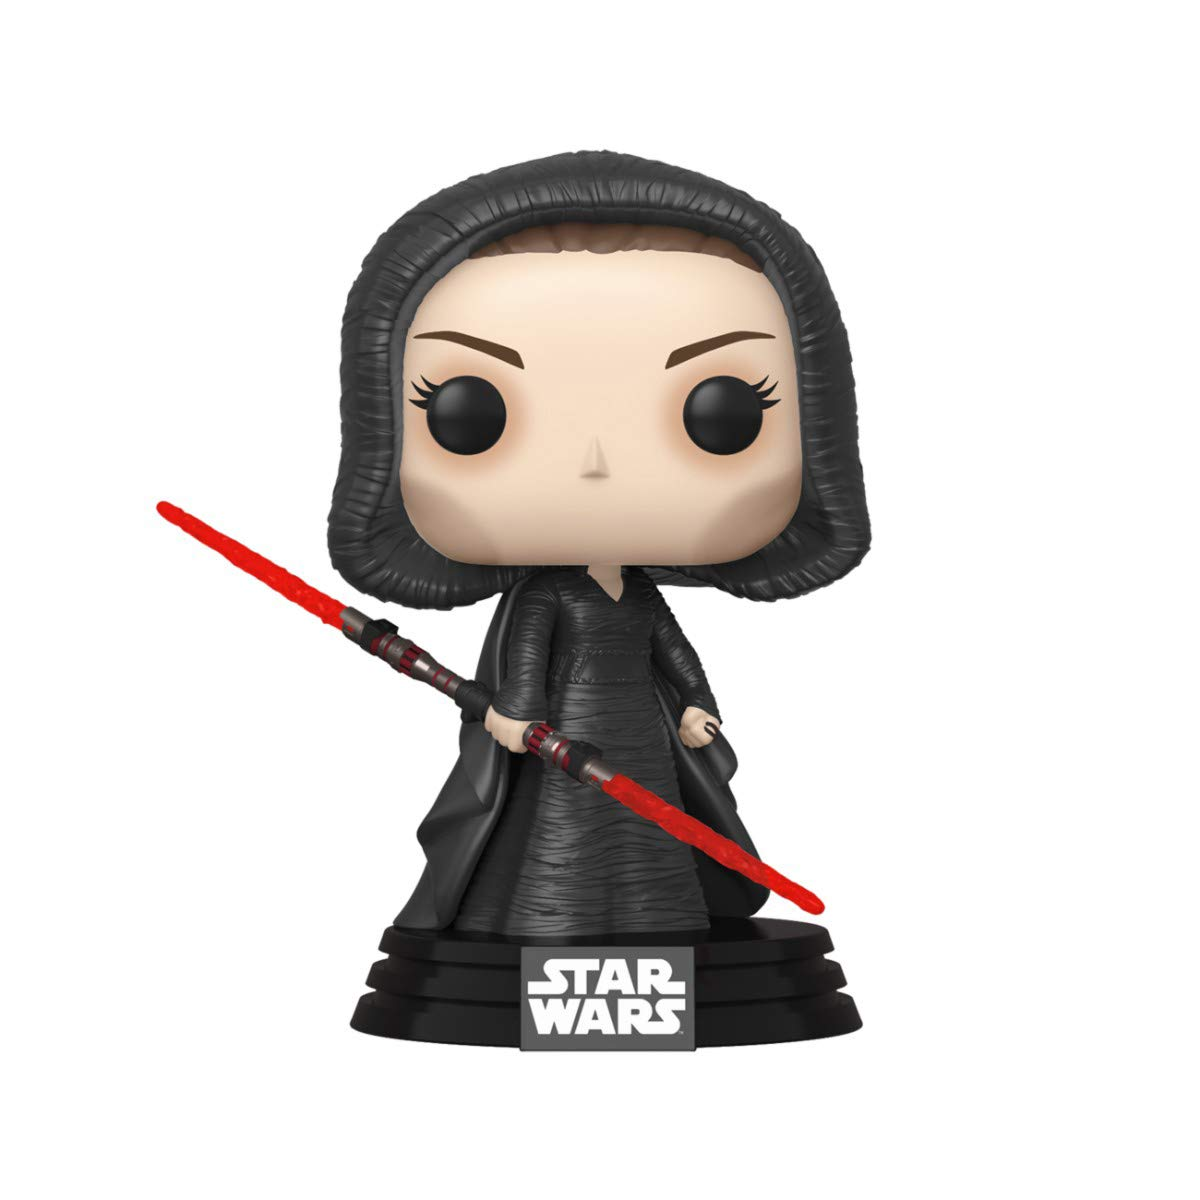 Funko- Pop Star Wars The Rise of Skywalker-Dark Rey Figura Coleccionable, Multicolor (47989): Amazon.es: Juguetes y juegos